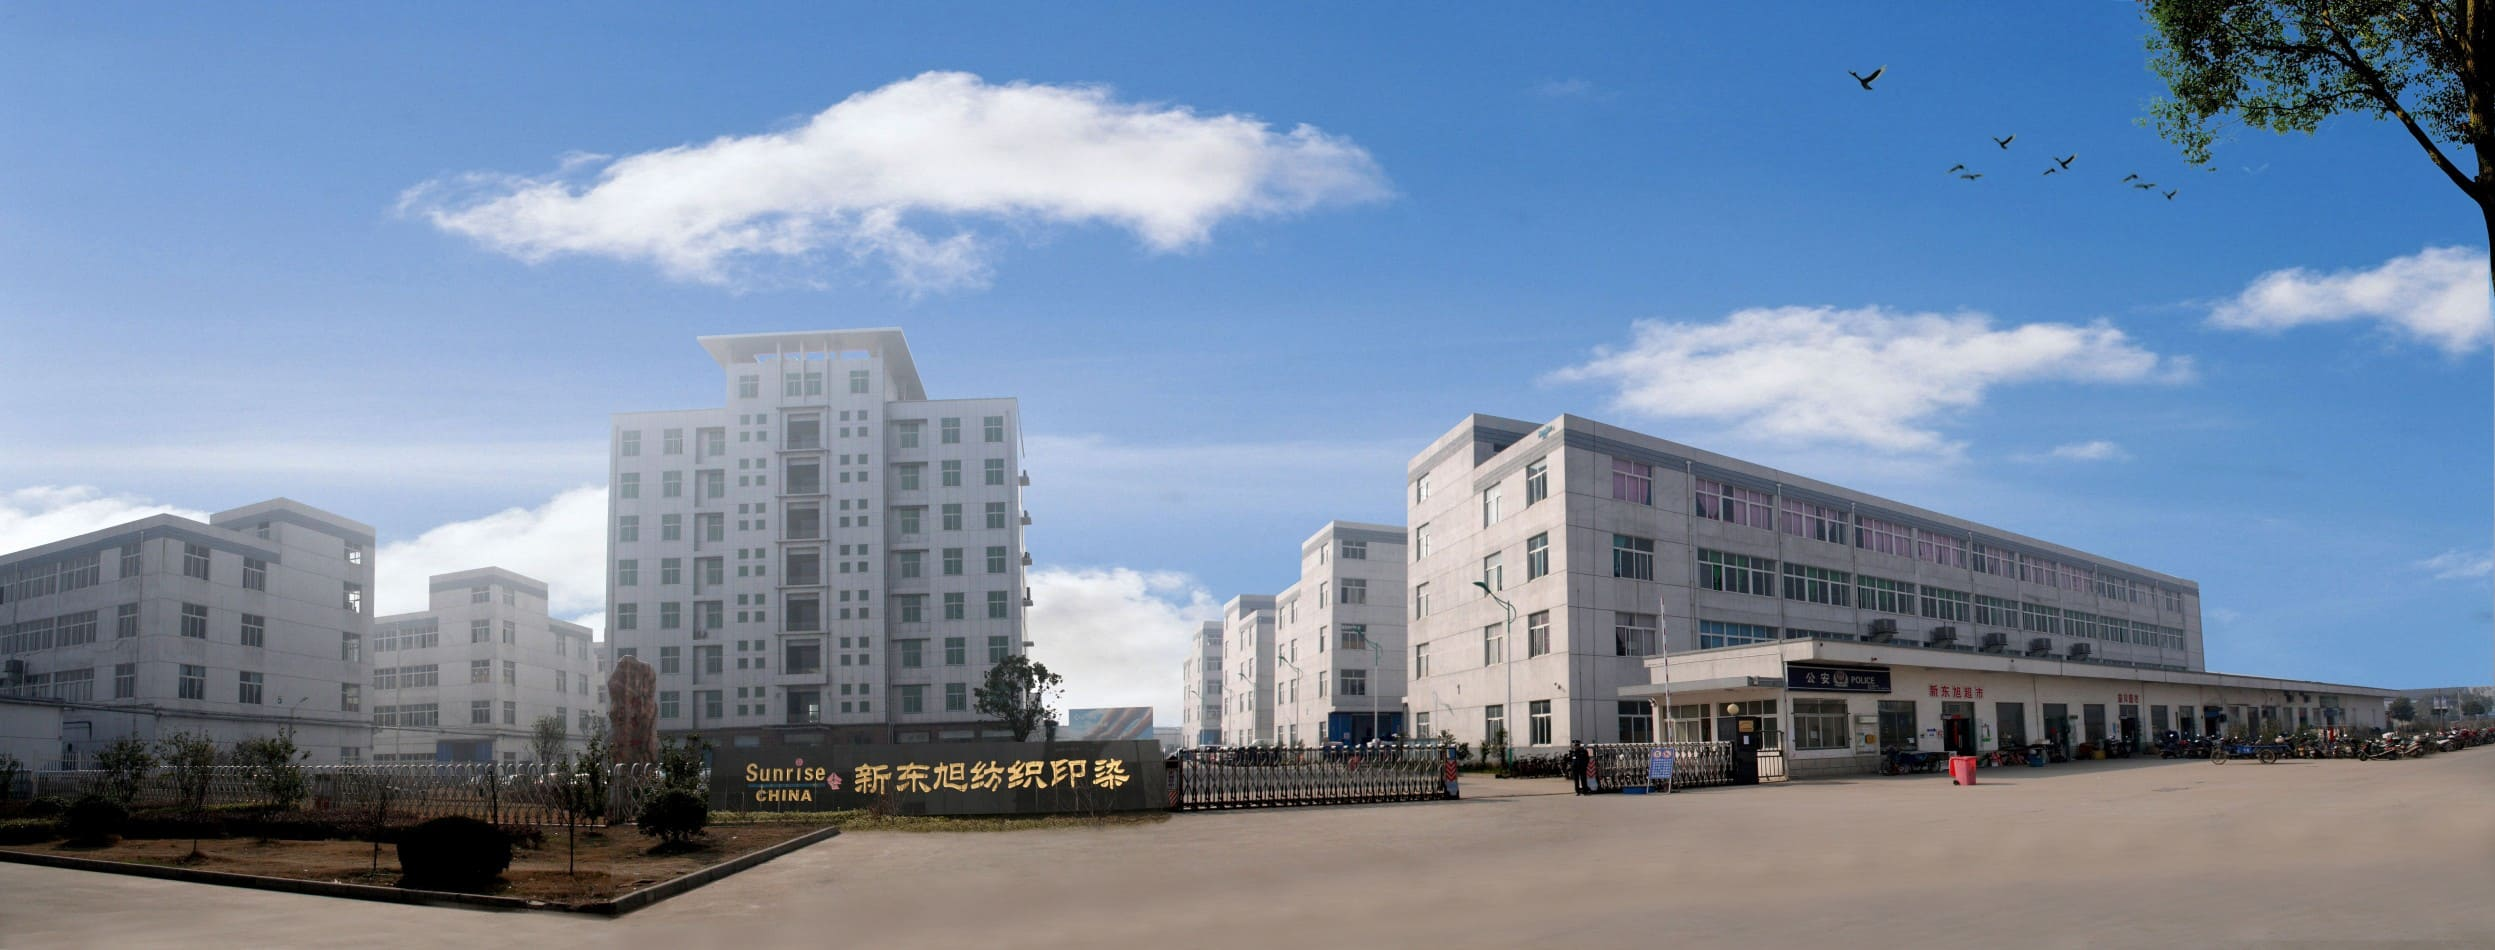 Zhangjiagang Sunrise Textile CO., LTD